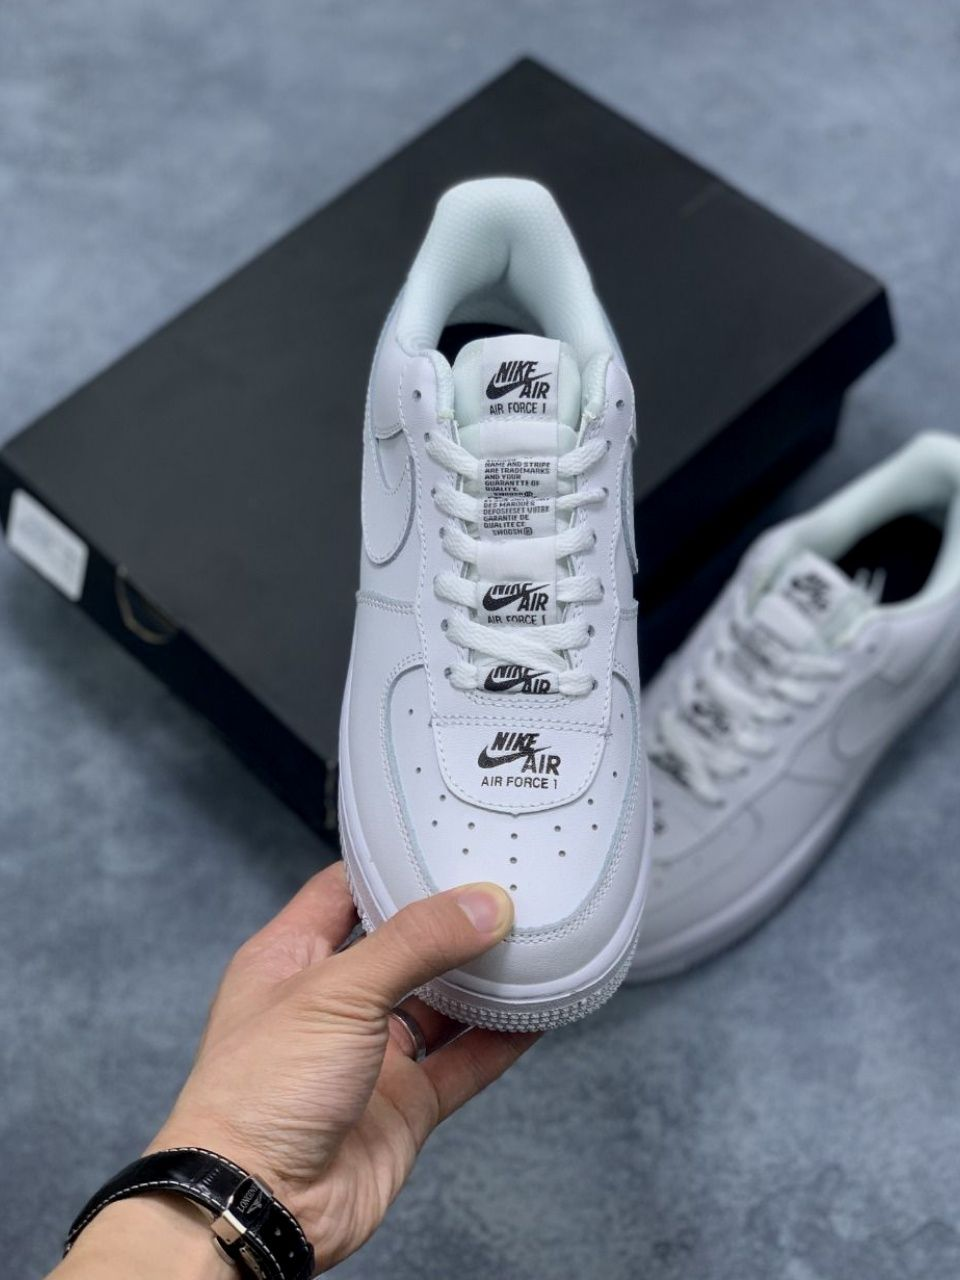 Air Force 1 Added Air Fashion Shoes 2020 Thanksgiving Outifts Trends In 2020 Nike Fashion Shoes Nike Casual Shoes Black Running Shoes